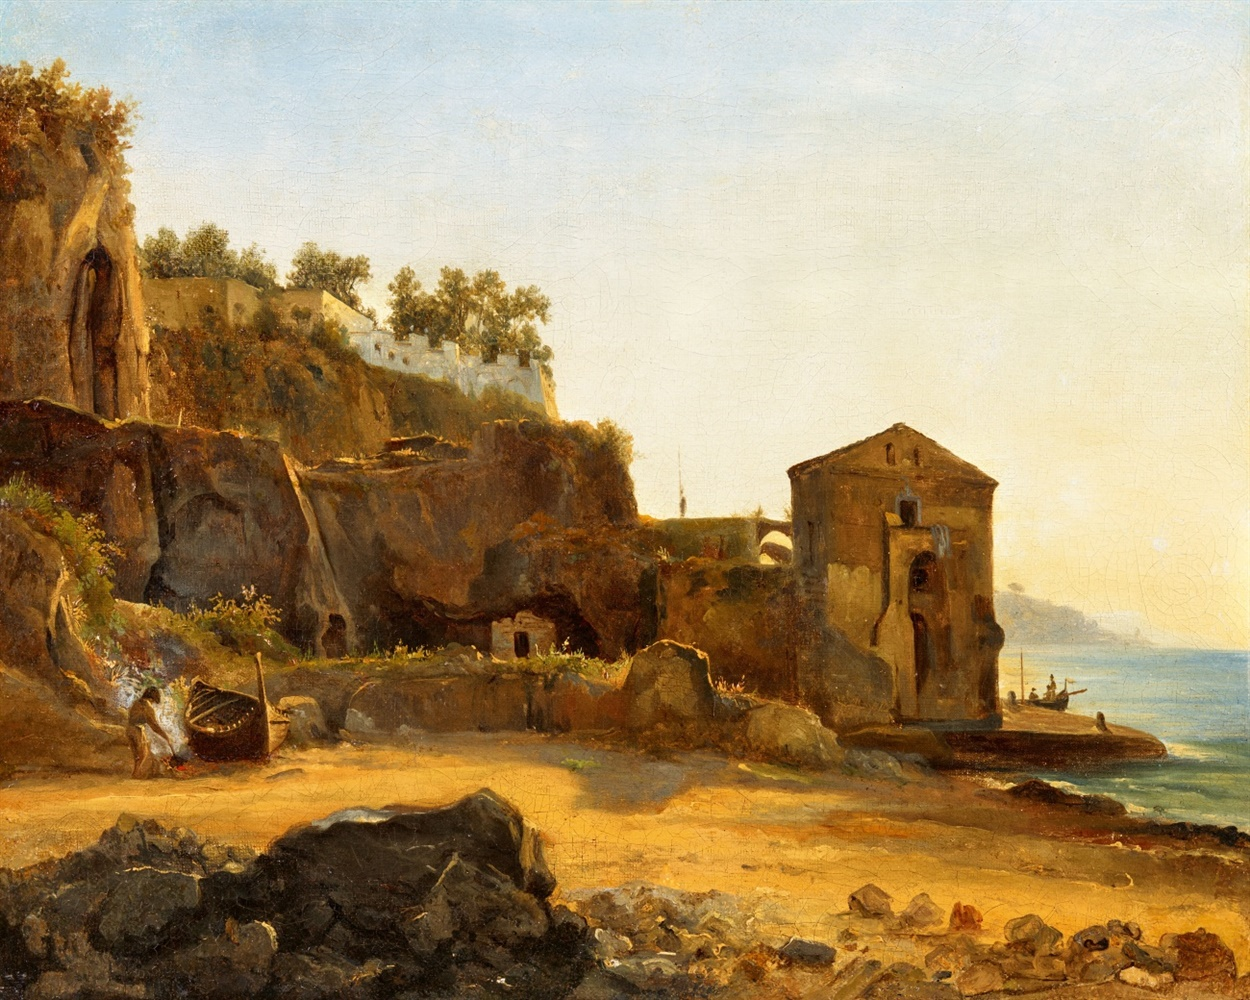 Sylvester ShchedrinThe Coast of SorrentOil on canvas, mounted on wood. 33 x 45 cm.CertificateLuisa